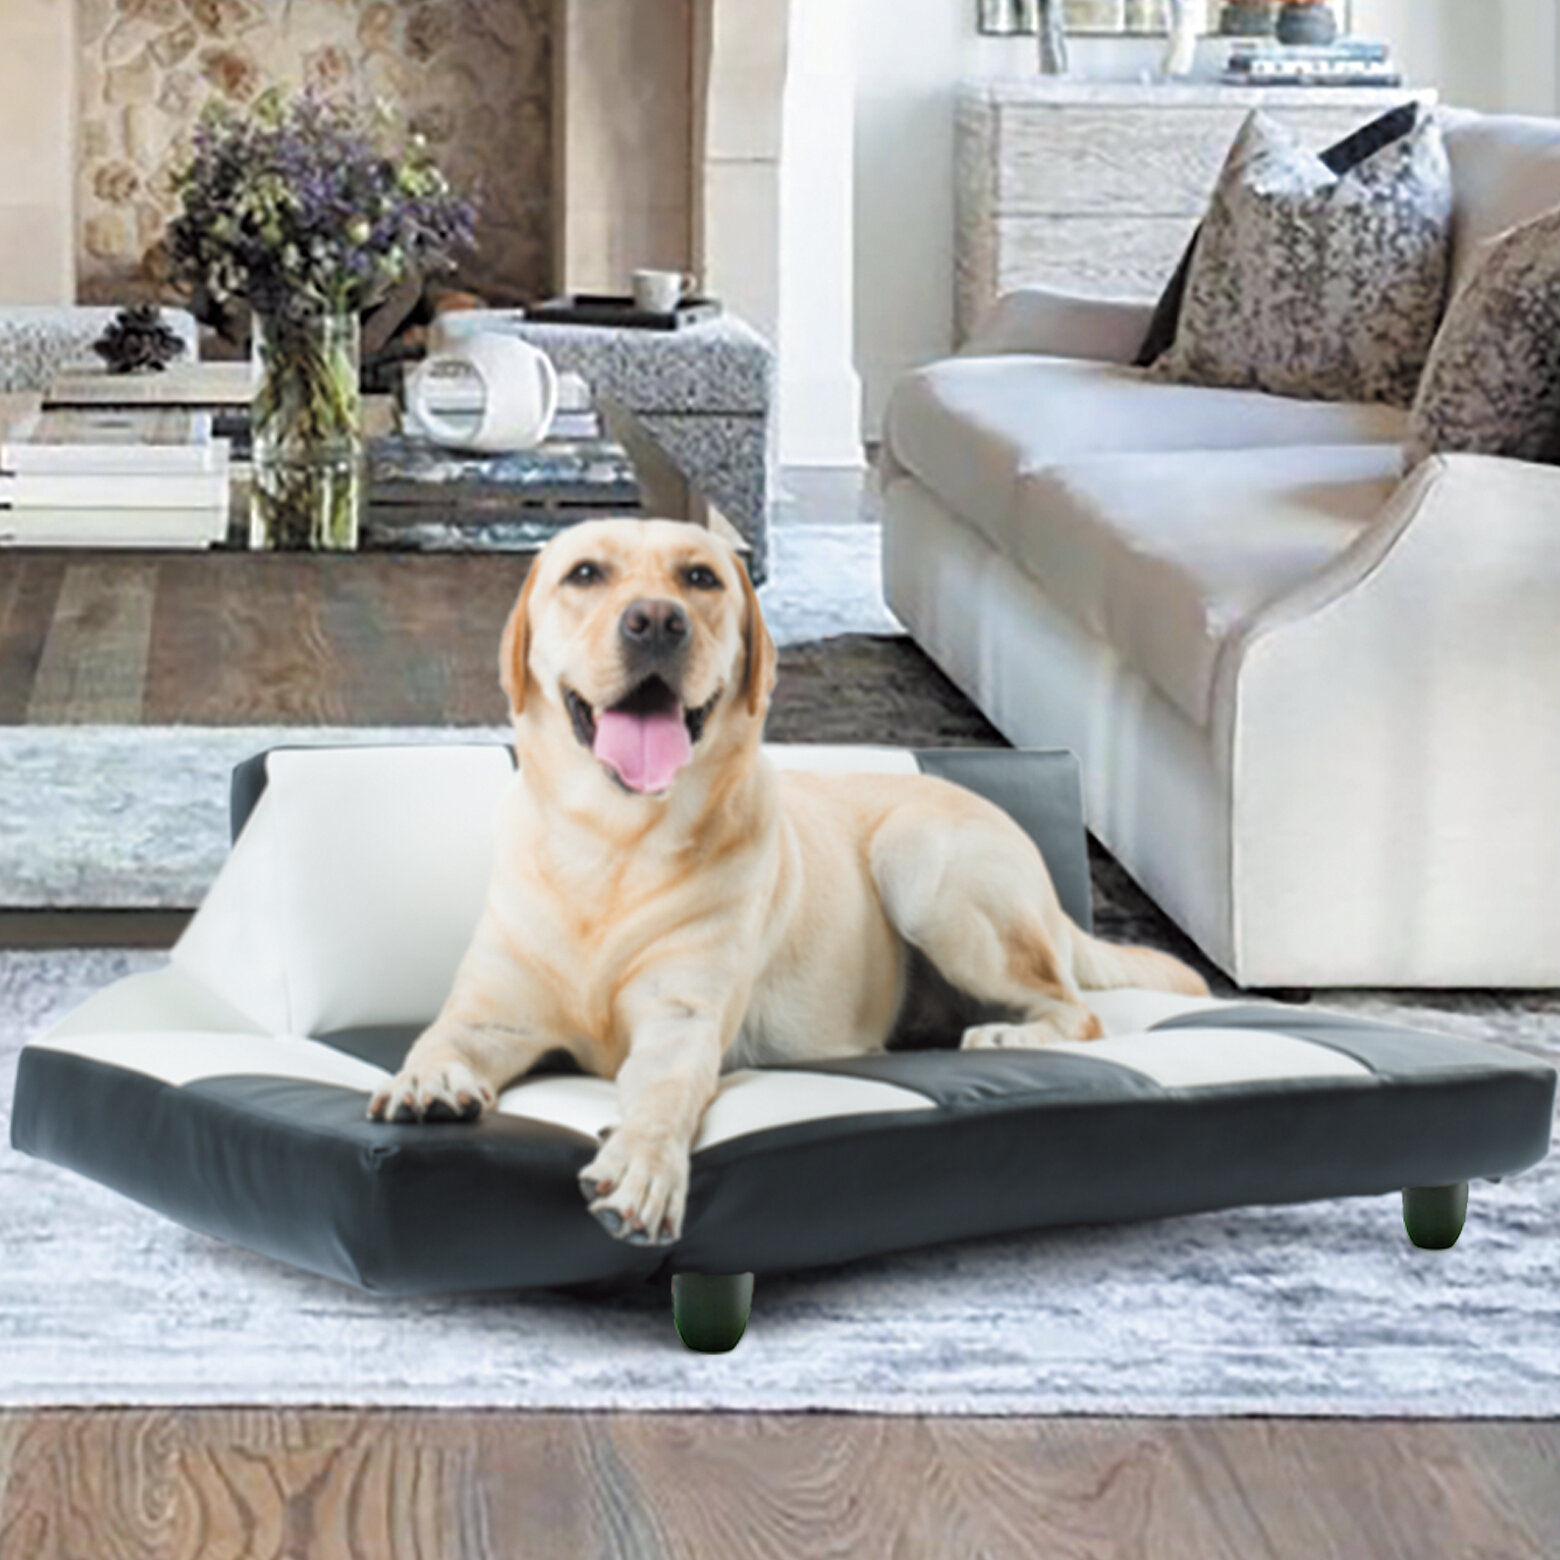 Z Joyee Dog Sofa Deluxe Scratch Resistant And Ultra Strong Structure Dog Bed Wayfair